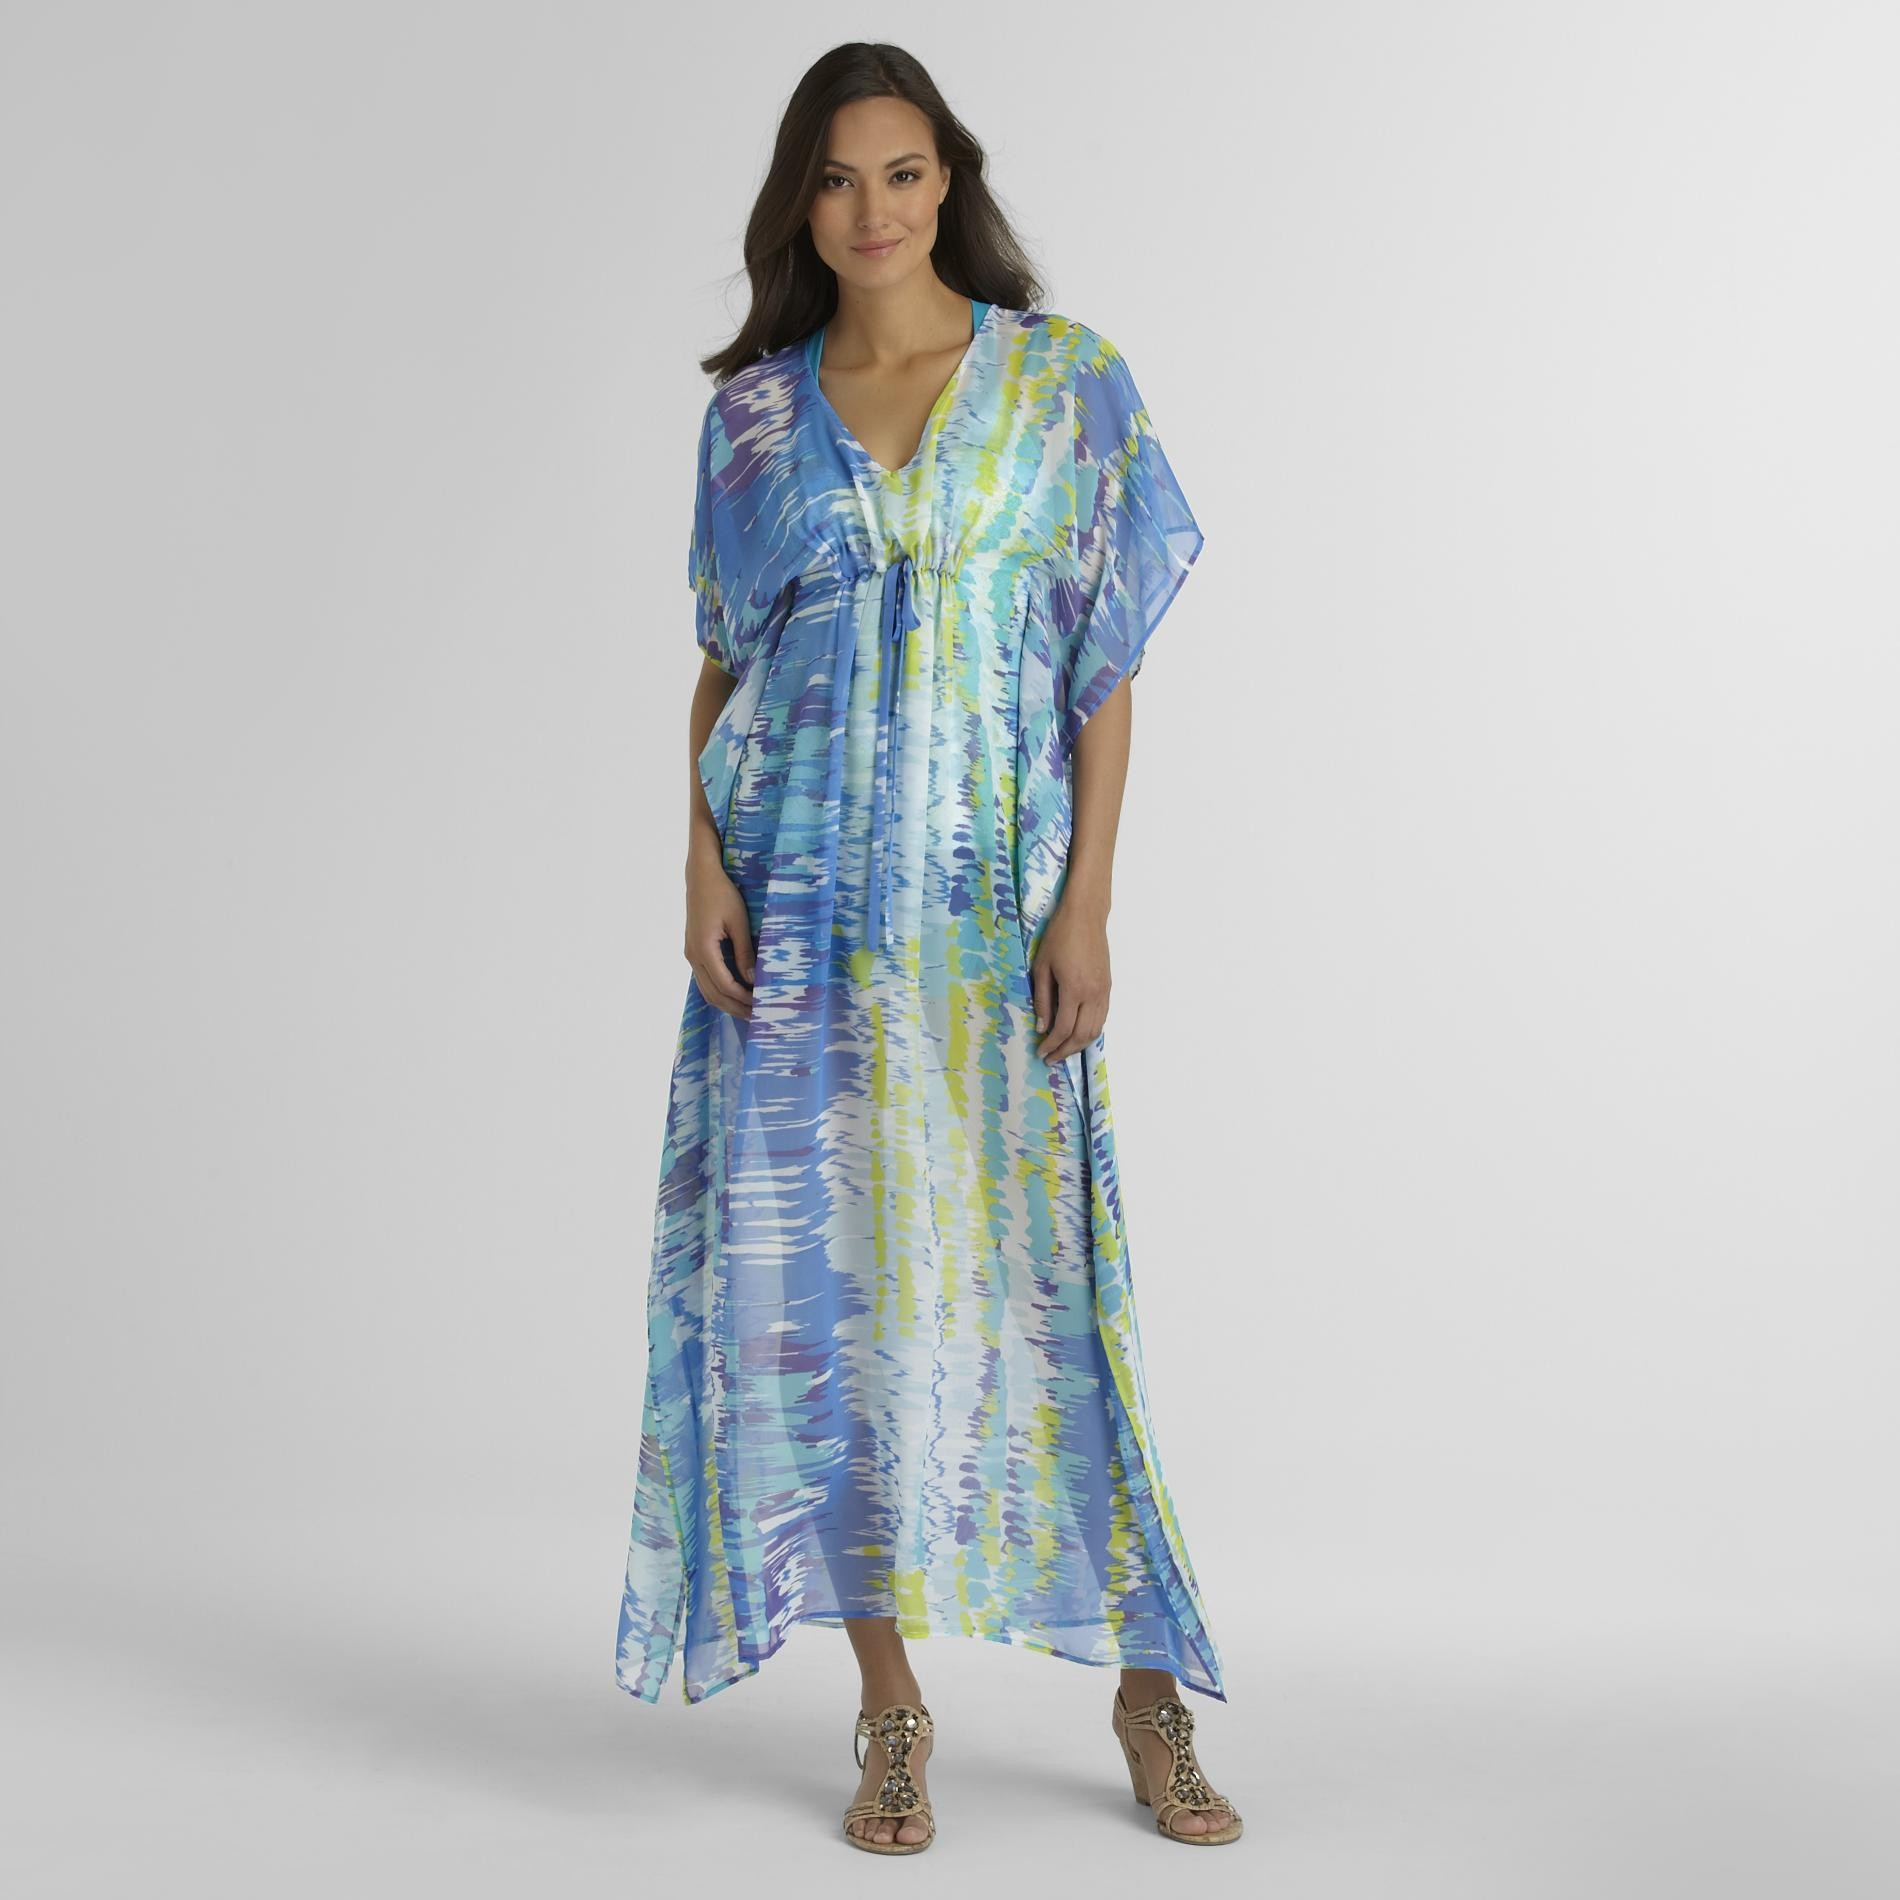 Jaclyn Smith Women's Caftan - Ikat at Kmart.com